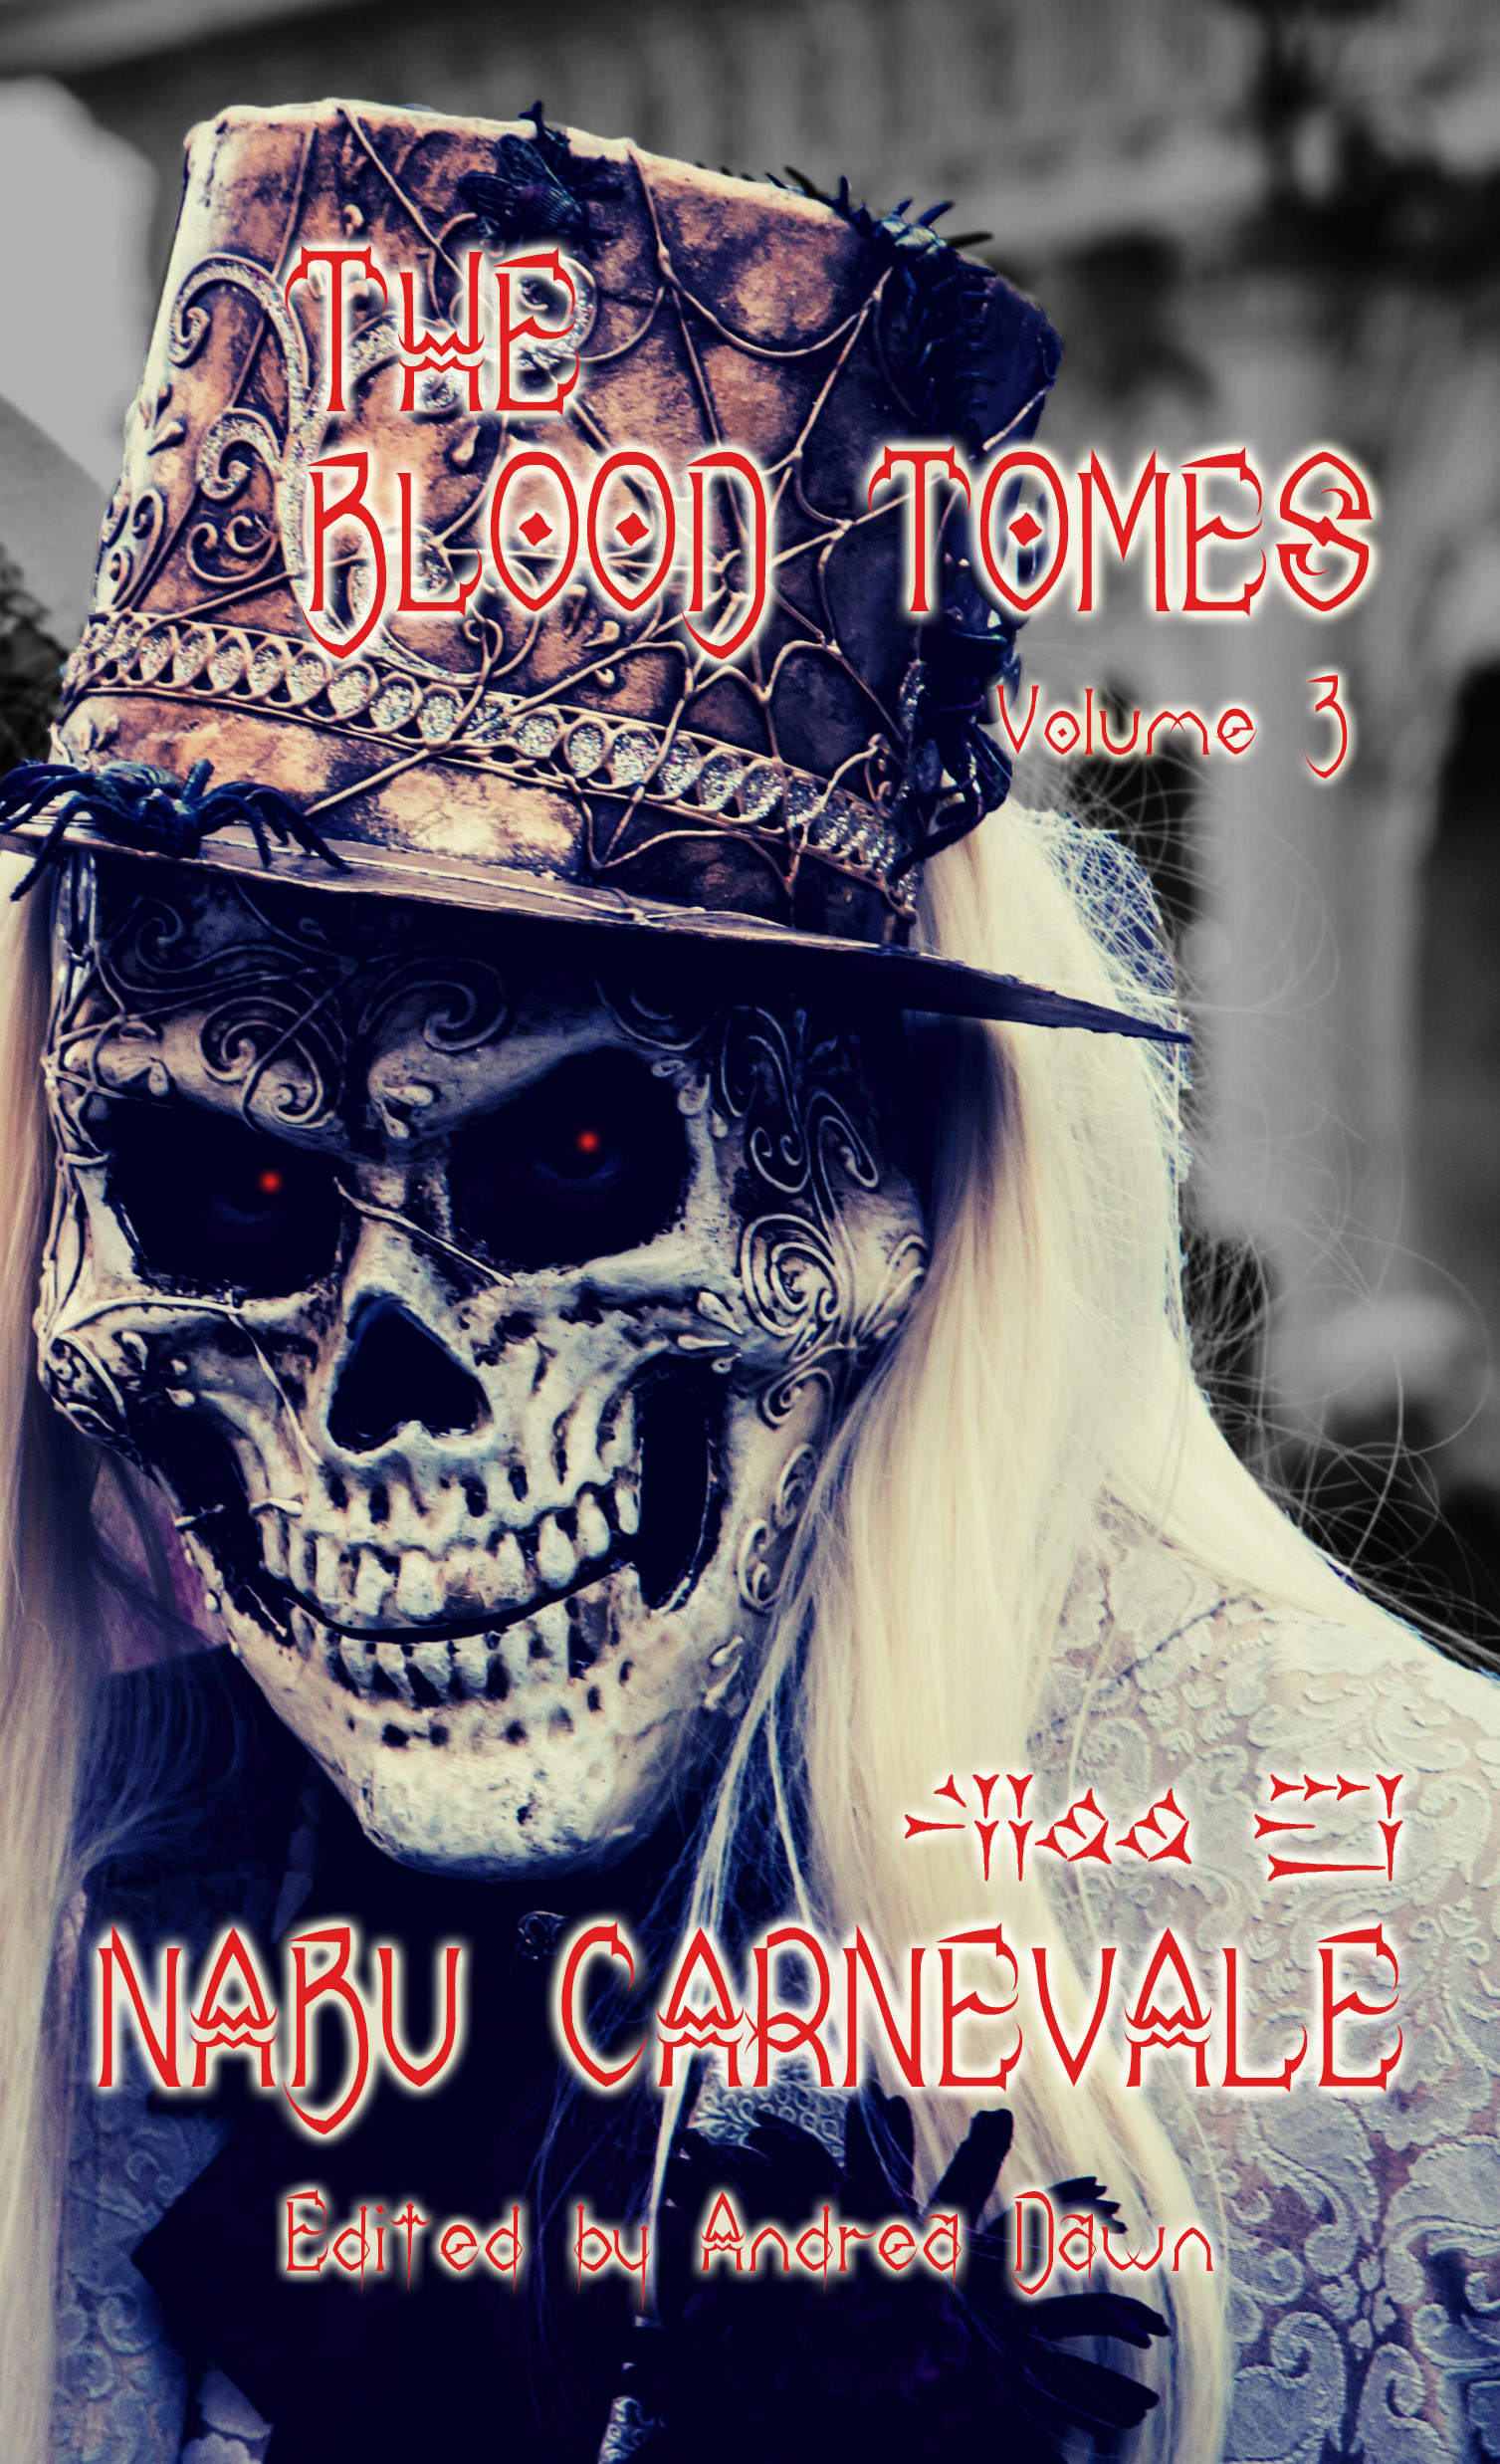 The Blood Tomes Vol 3 Nabu Carnevale Front Cover